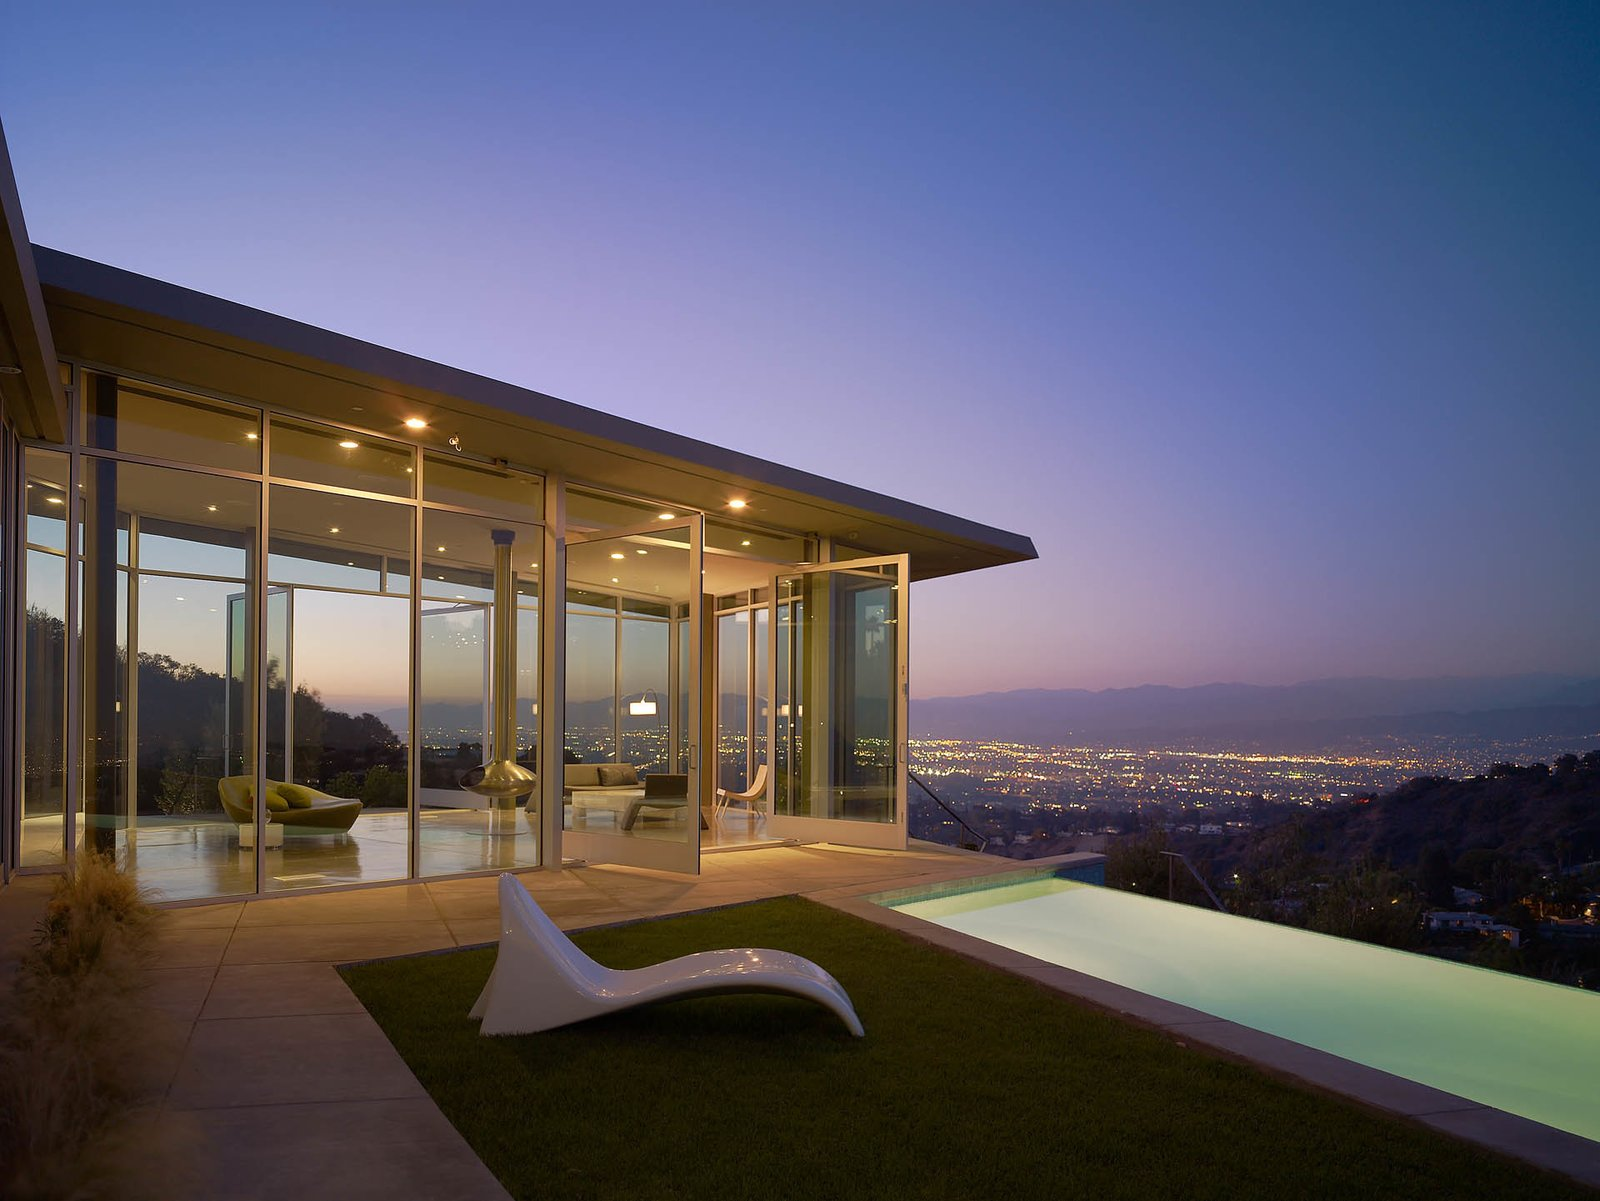 For the Skyline Residence, Belzberg Architects made a conscious effort to to build an environmentally sensitive structure, without sacrificing aesthetic and budget. They recycled wood framing and flooring from a nearby construction site and the low e-glazing, steel, and concrete mixes were all manufactured in California. 10 Modern Homes That Made a Star Appearance in Films - Photo 4 of 17